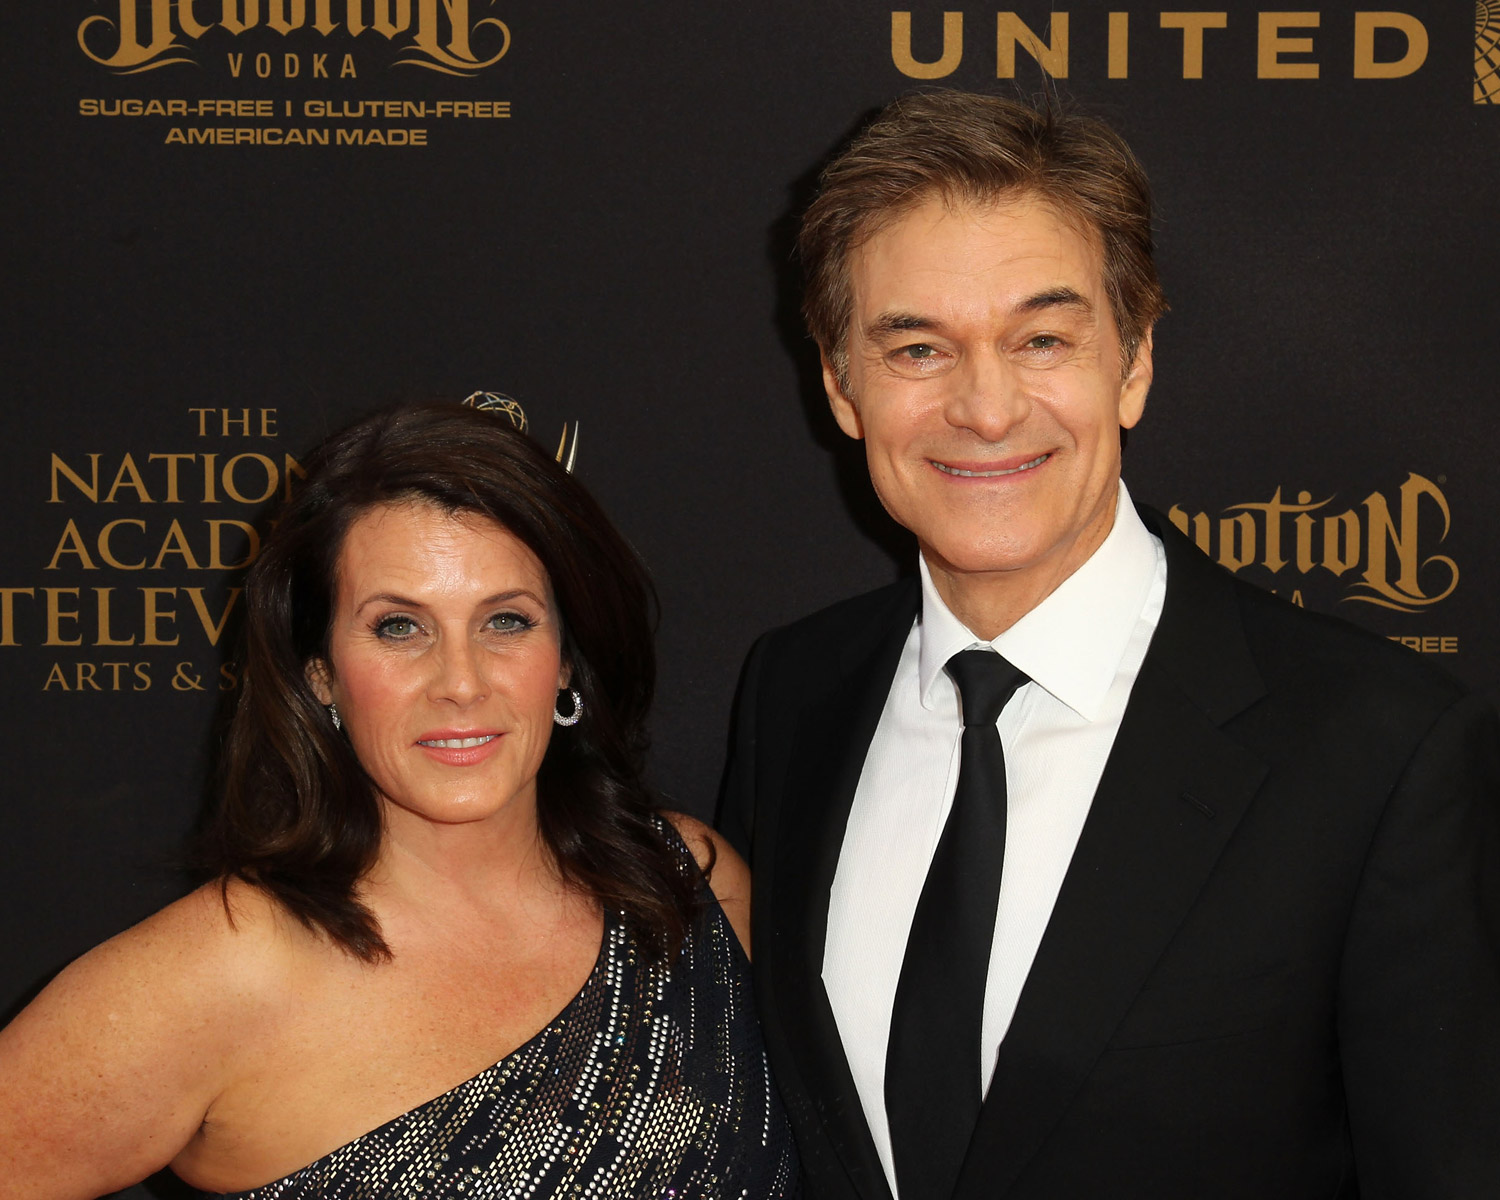 Dr Oz Shares Throwback Wedding Photo on 31st Anniversary